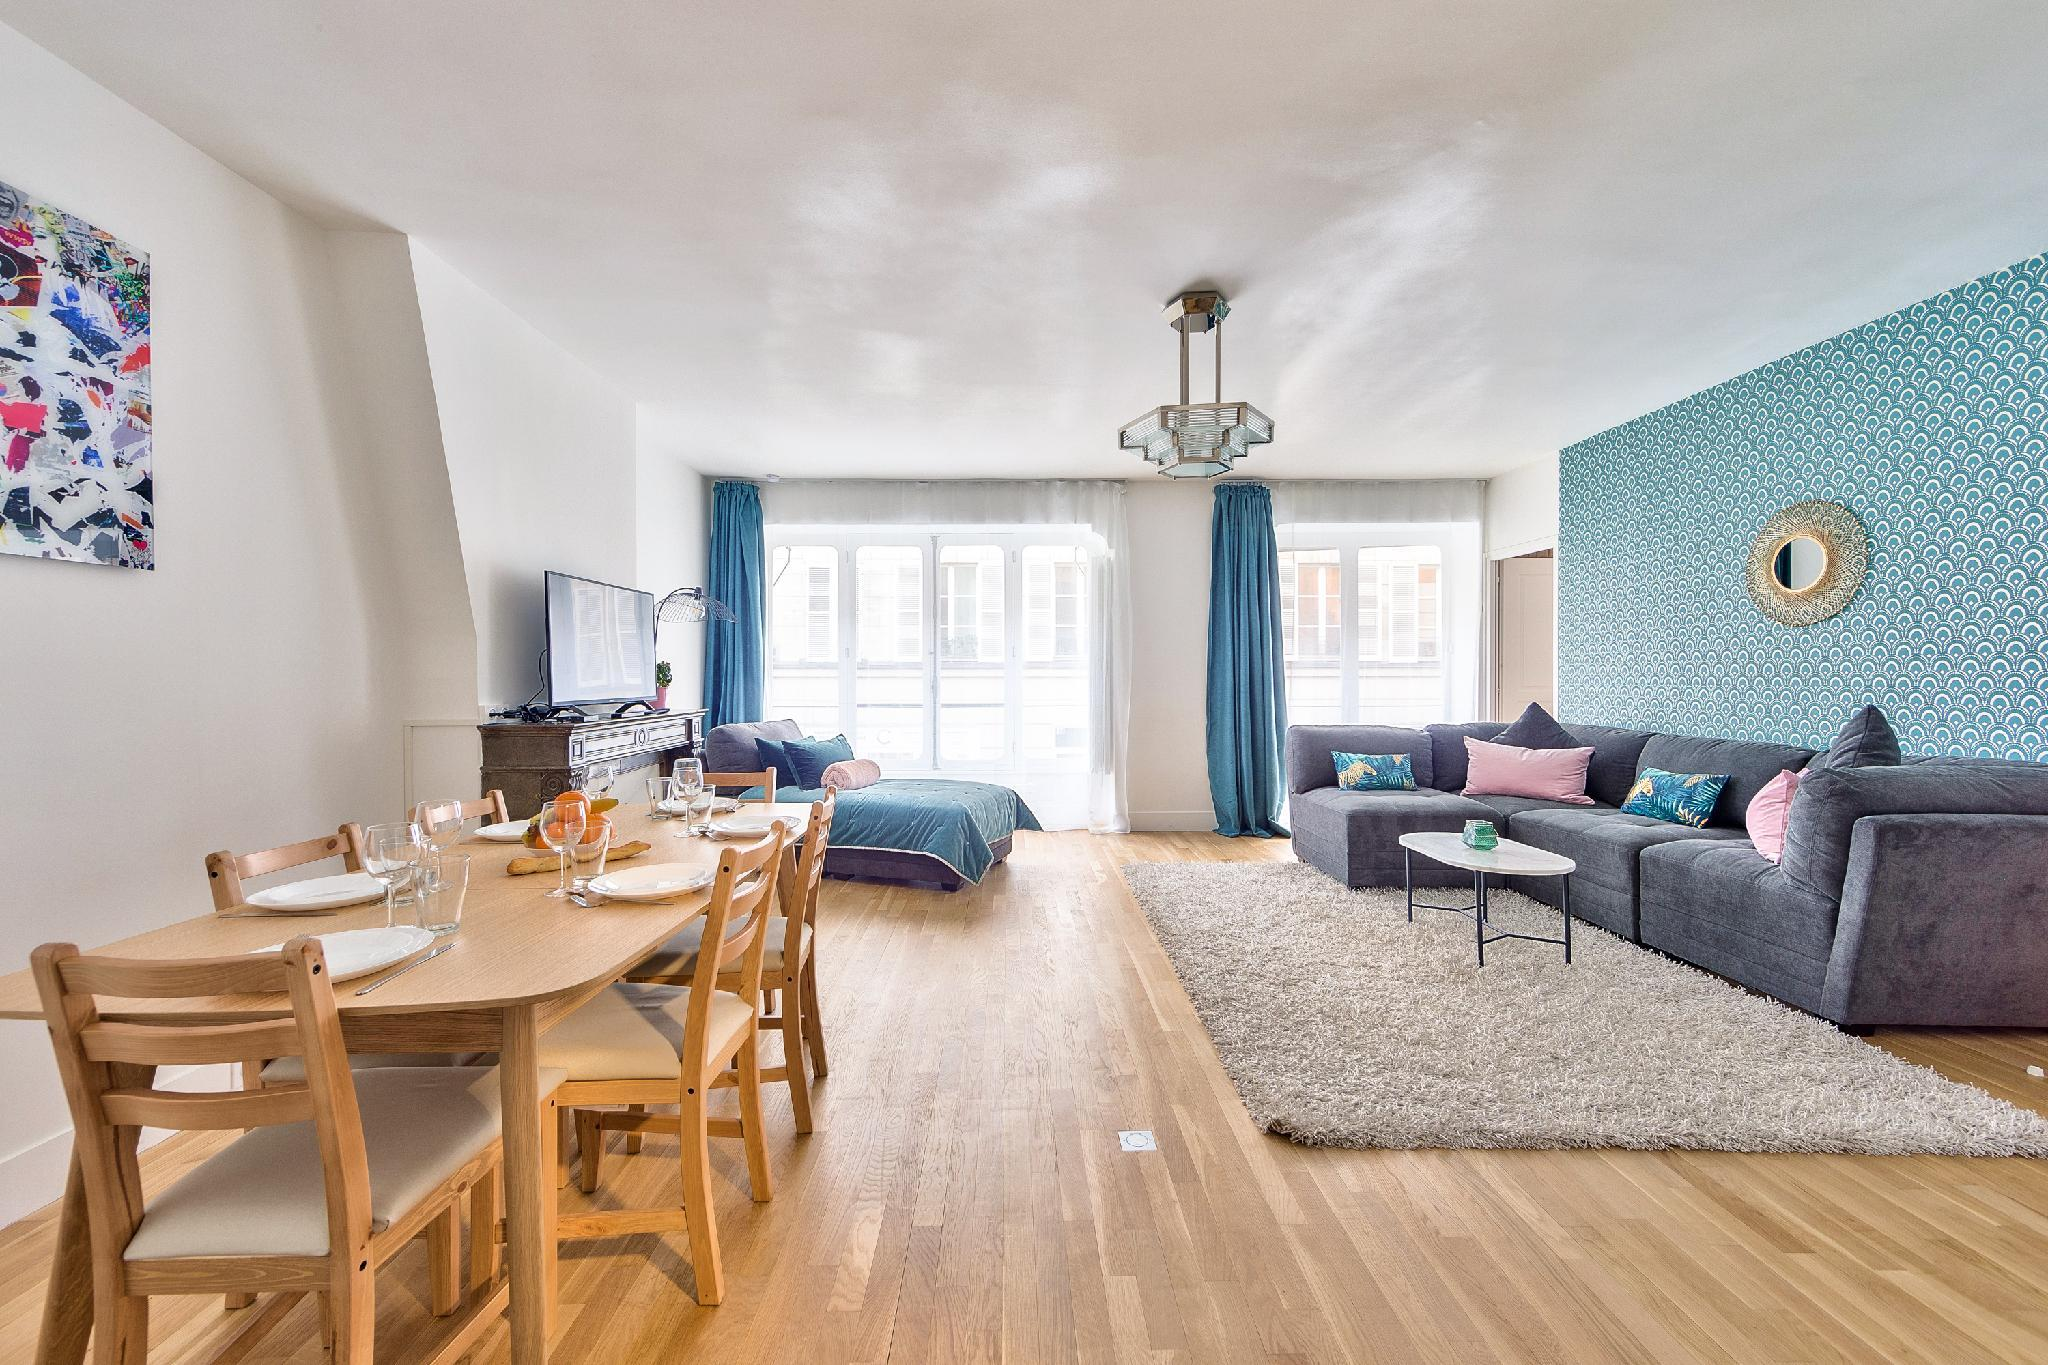 NEW Paradis - 2Bdrs Flat In The Heart Of Paris